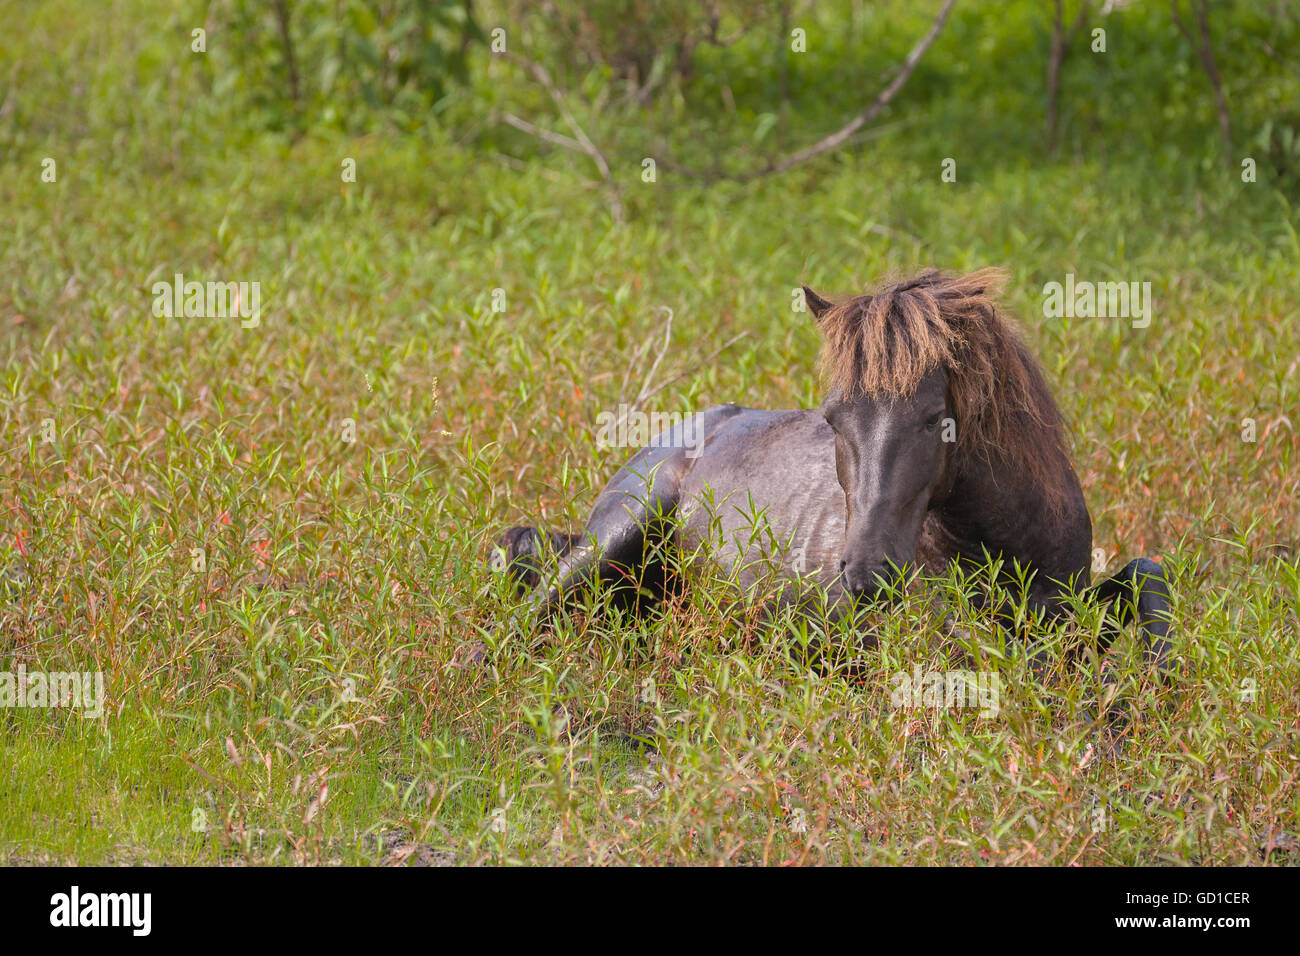 A wild stallion resting in the soft grass. - Stock Image